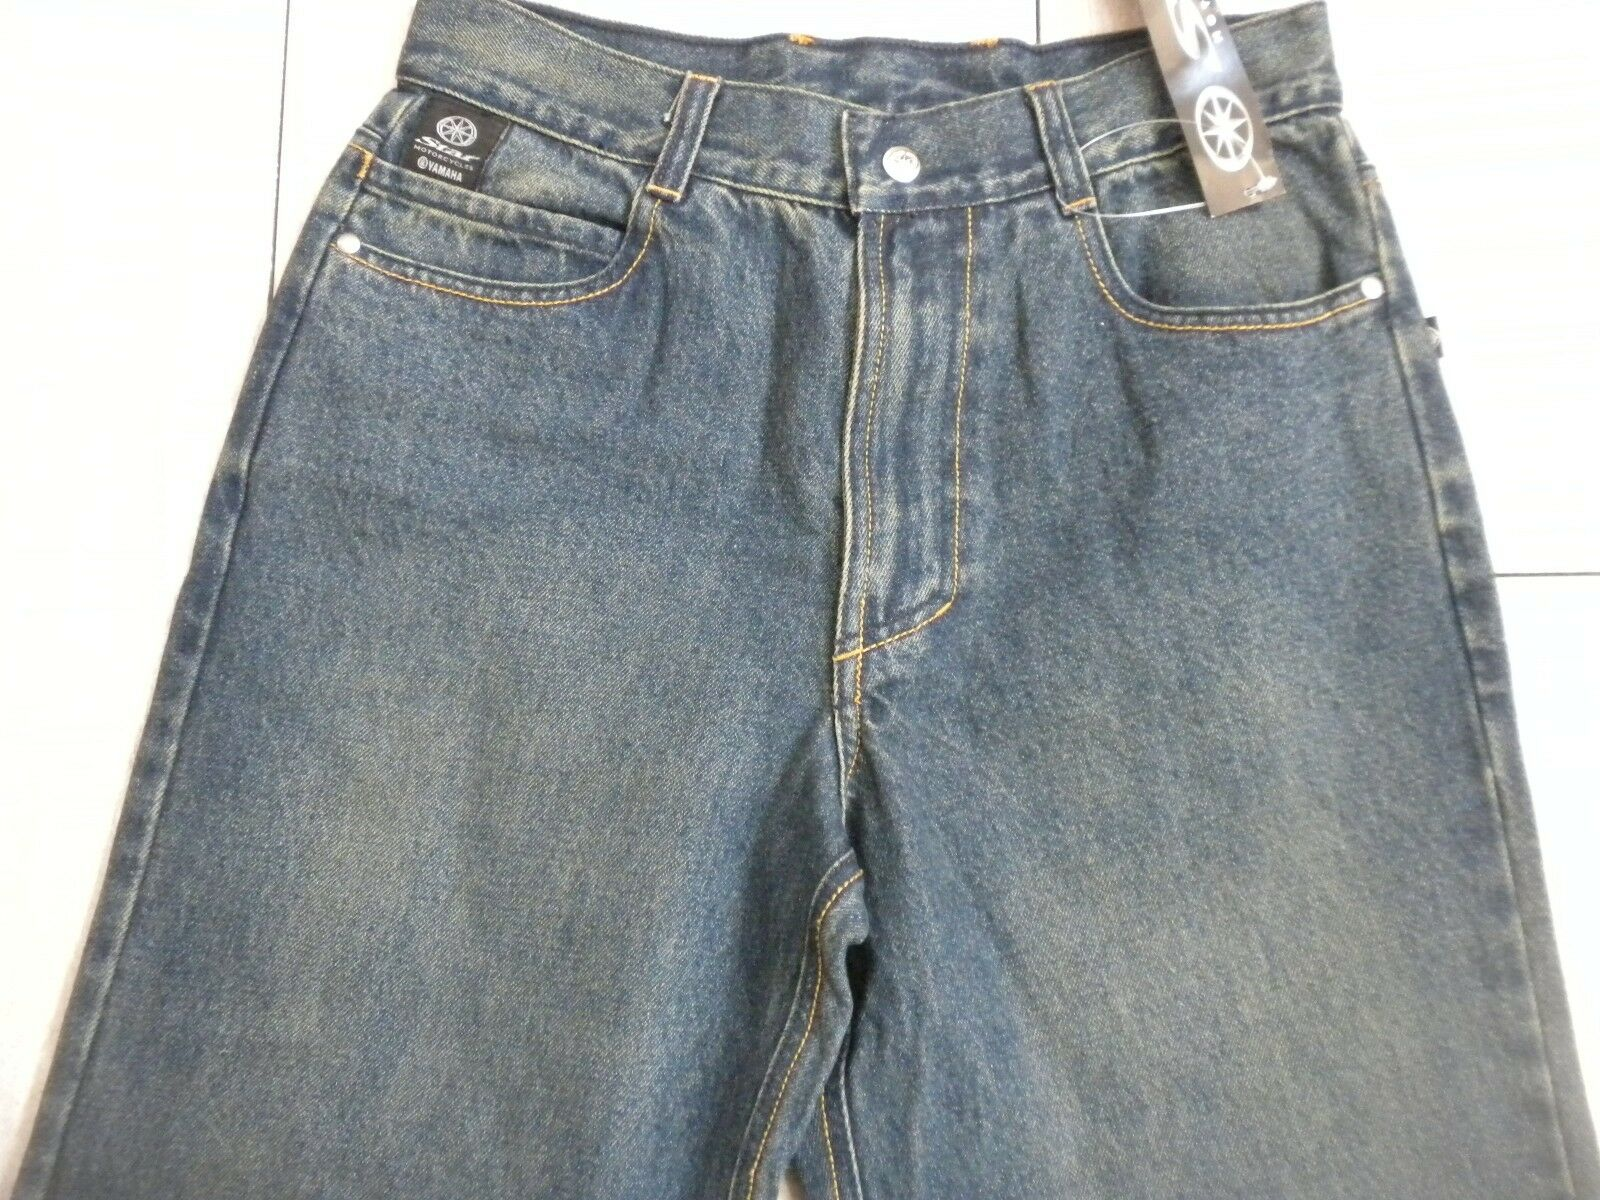 STAR Motorcycles Men's bluee Jeans Denim Size 30 waist                 ID